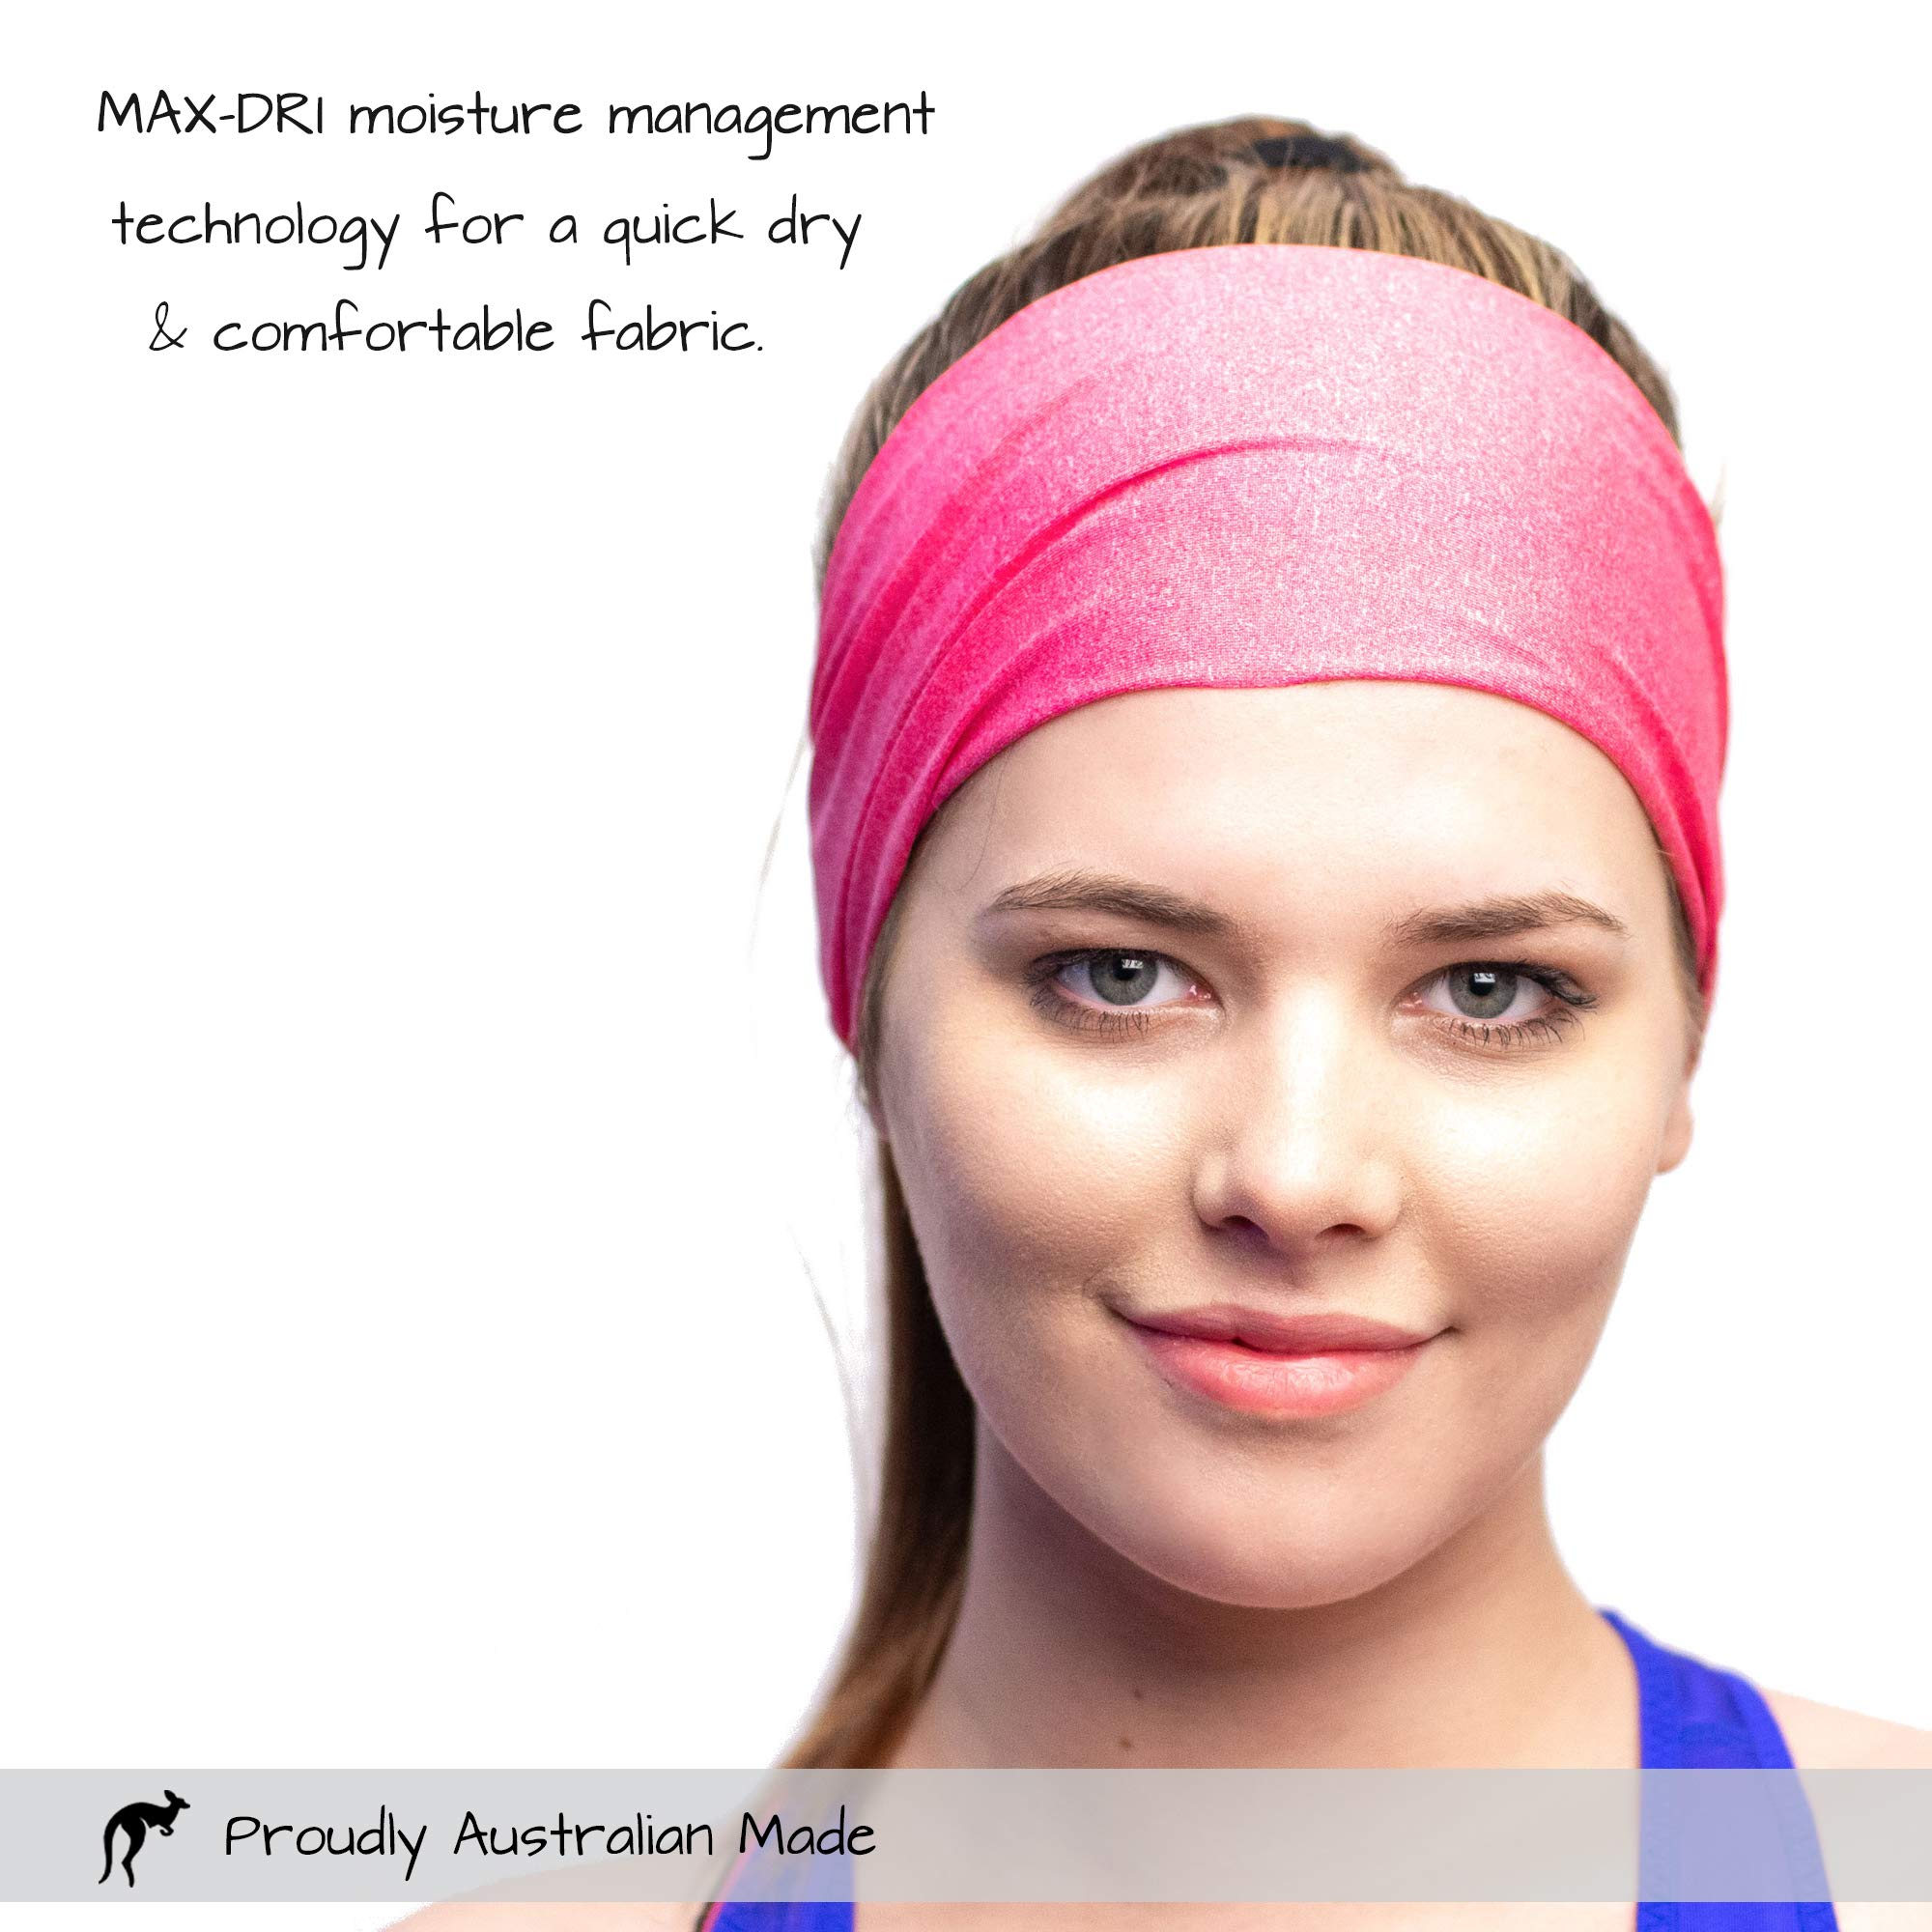 Red Dust Active Running Sweatband - Lightweight, Non-Slip, Wide & Sweat Wicking - Pink Workout Headband Made for Active Lifestyles by Red Dust Active (Image #4)